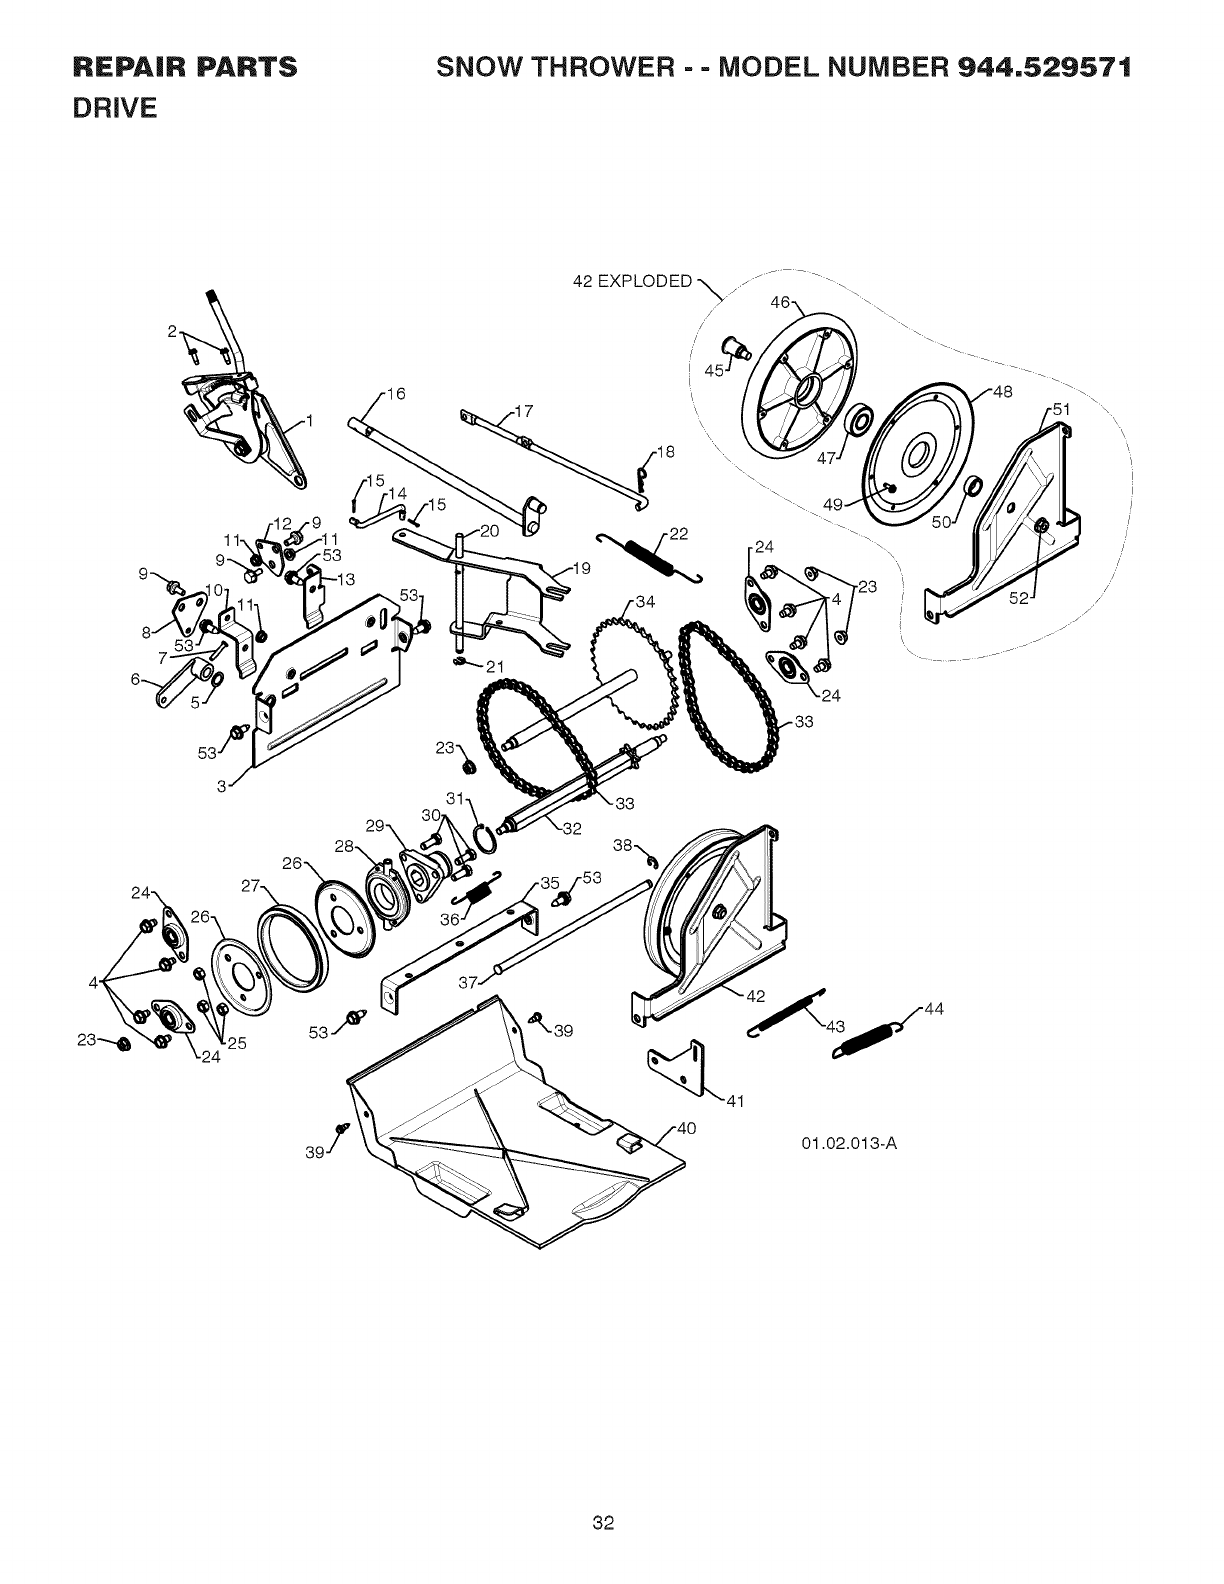 Page 32 of Sears Snow Blower 944.529571 User Guide